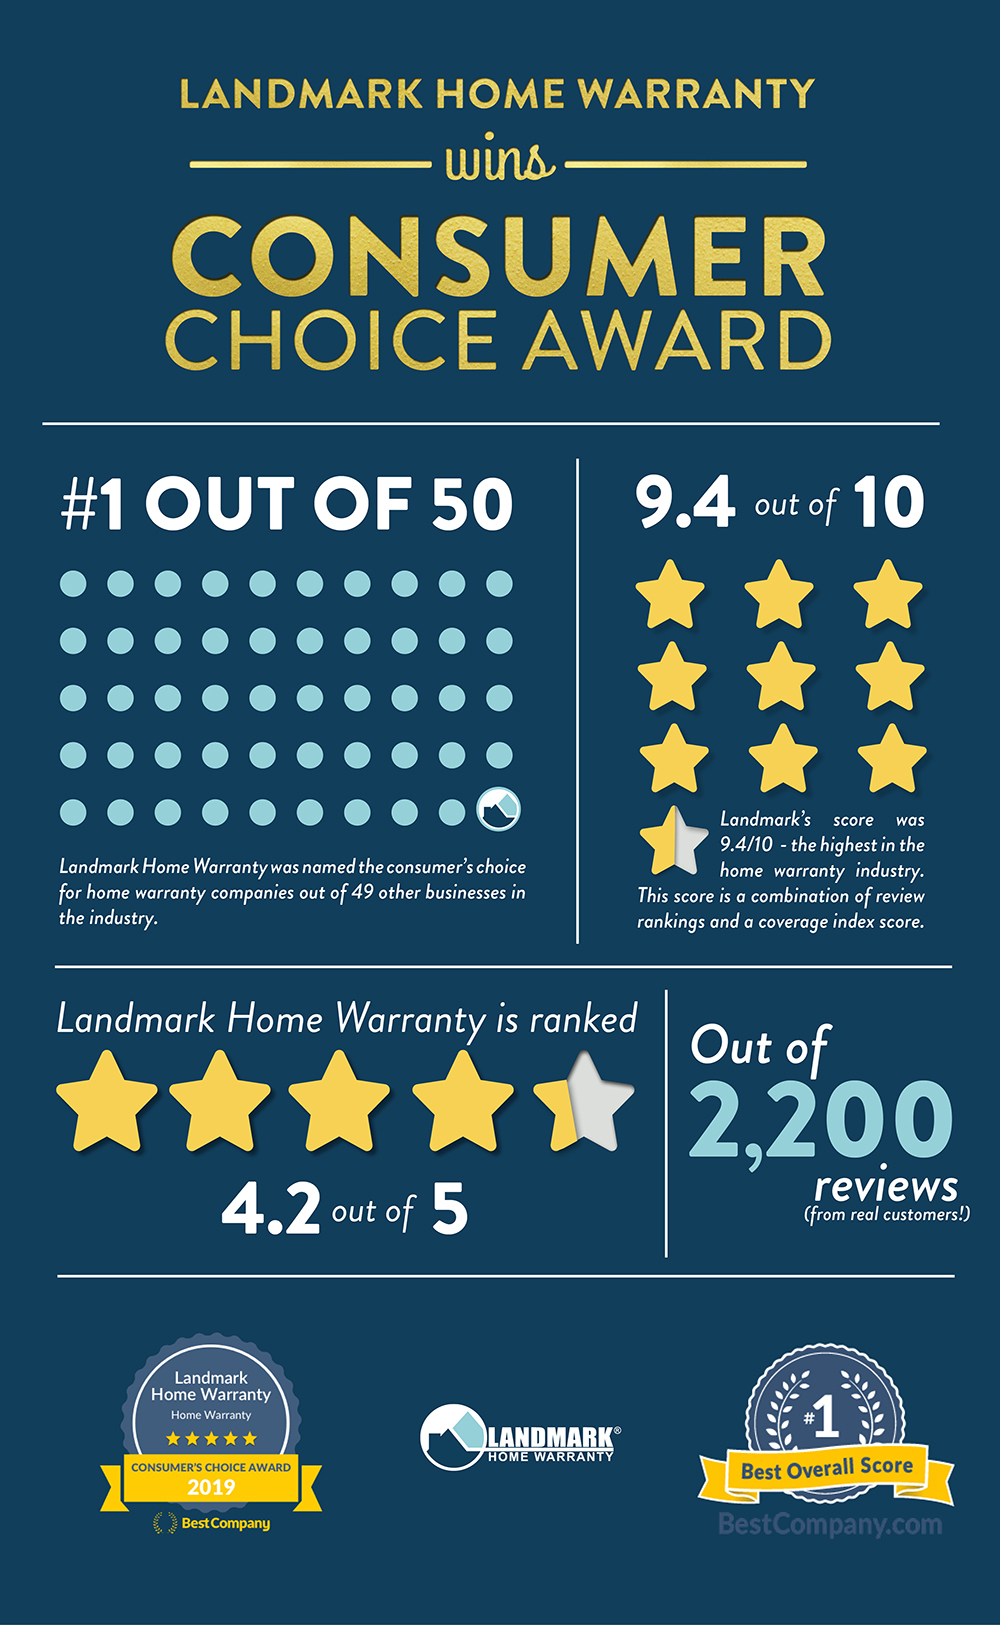 Landmark Home Warranty wins best company's consumer choice award.